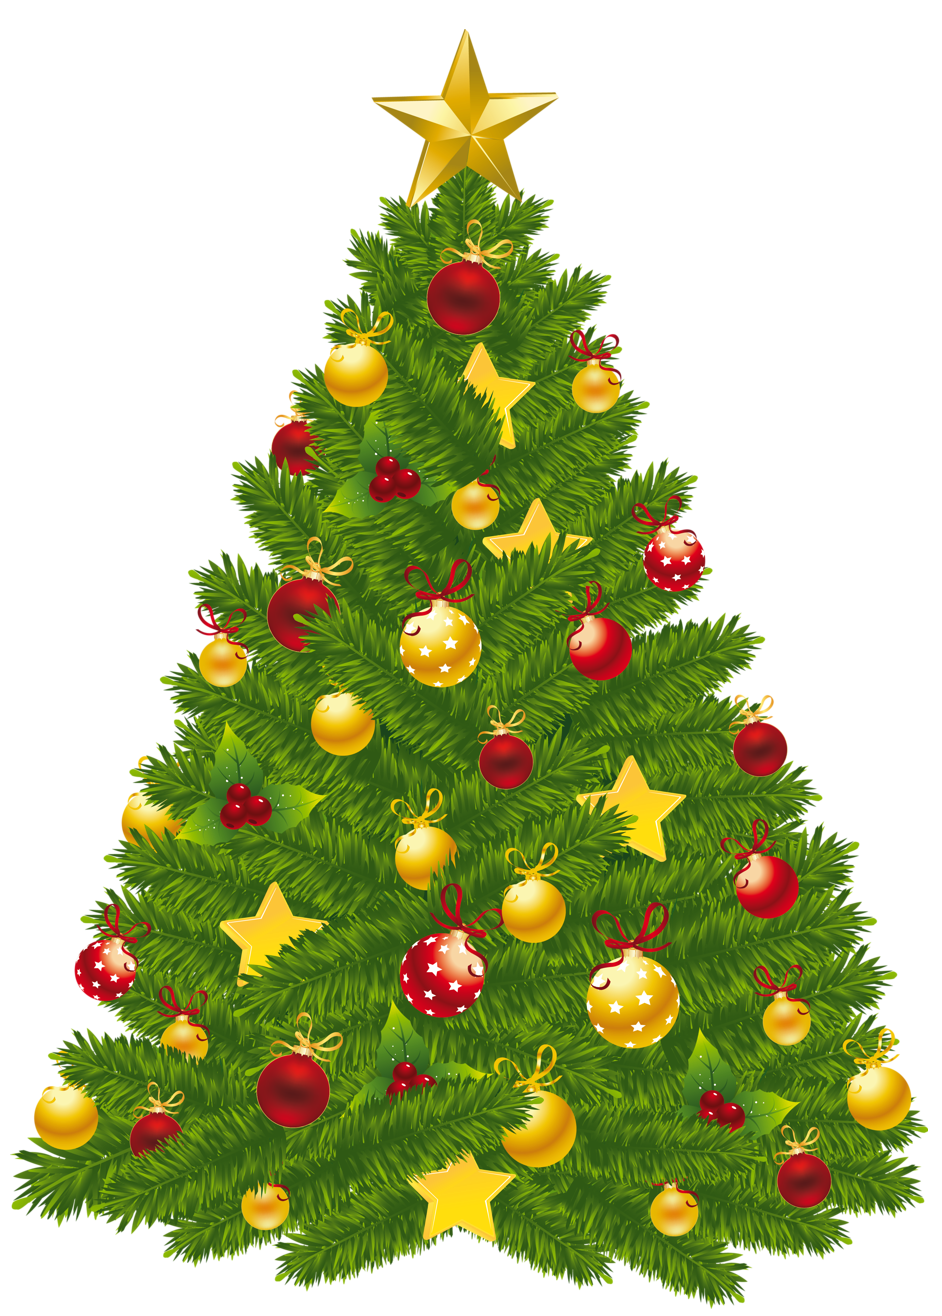 Sports clipart christmas. Tree transparent png pictures